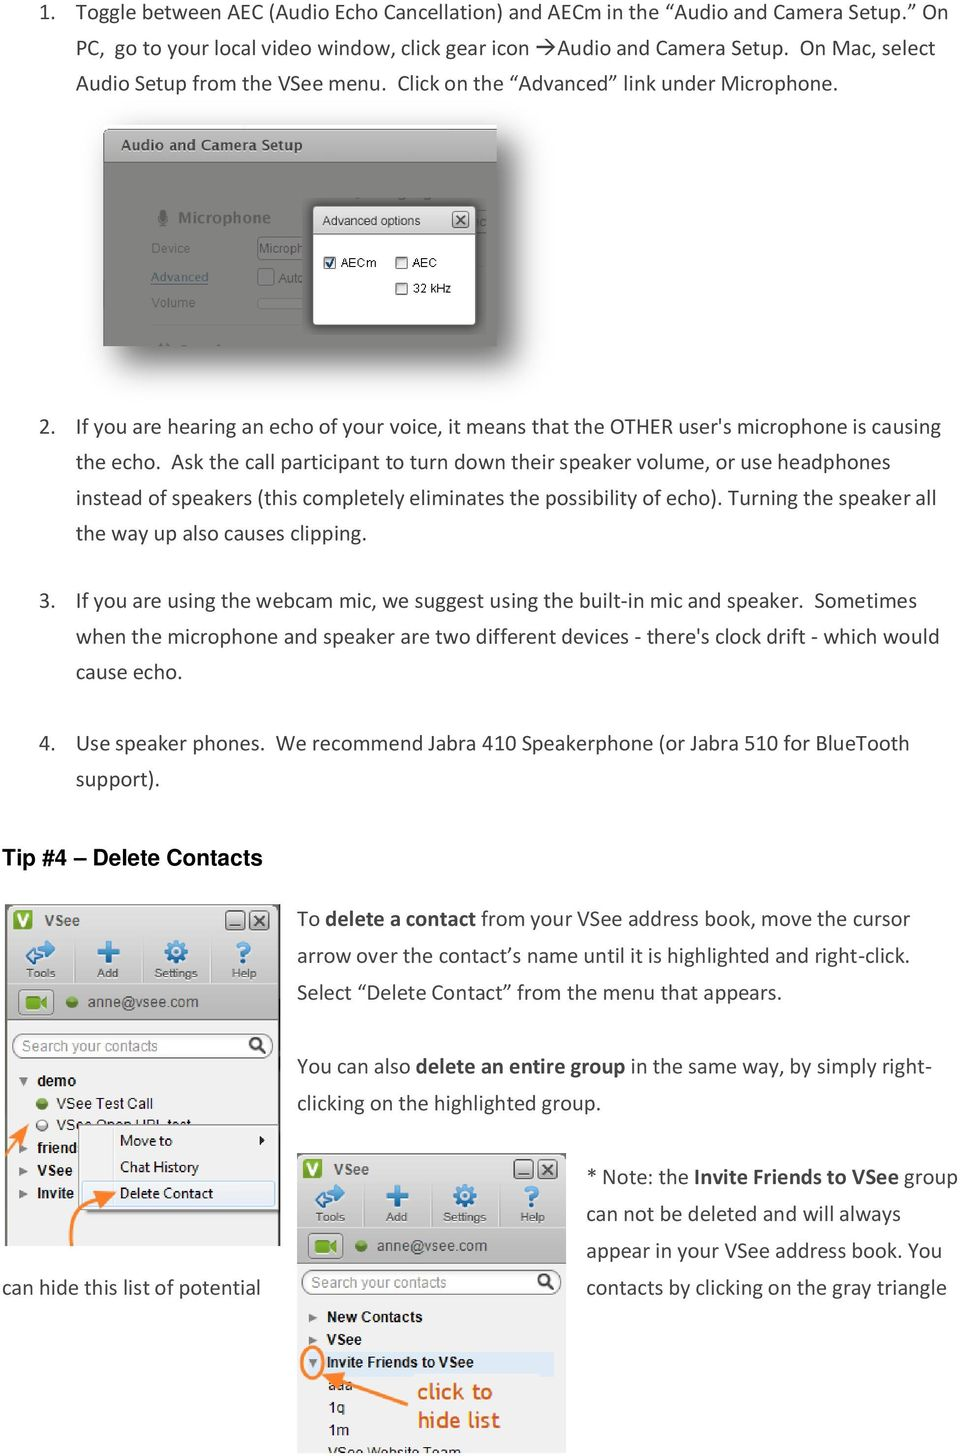 VSee Quick Guide and Tips - PDF